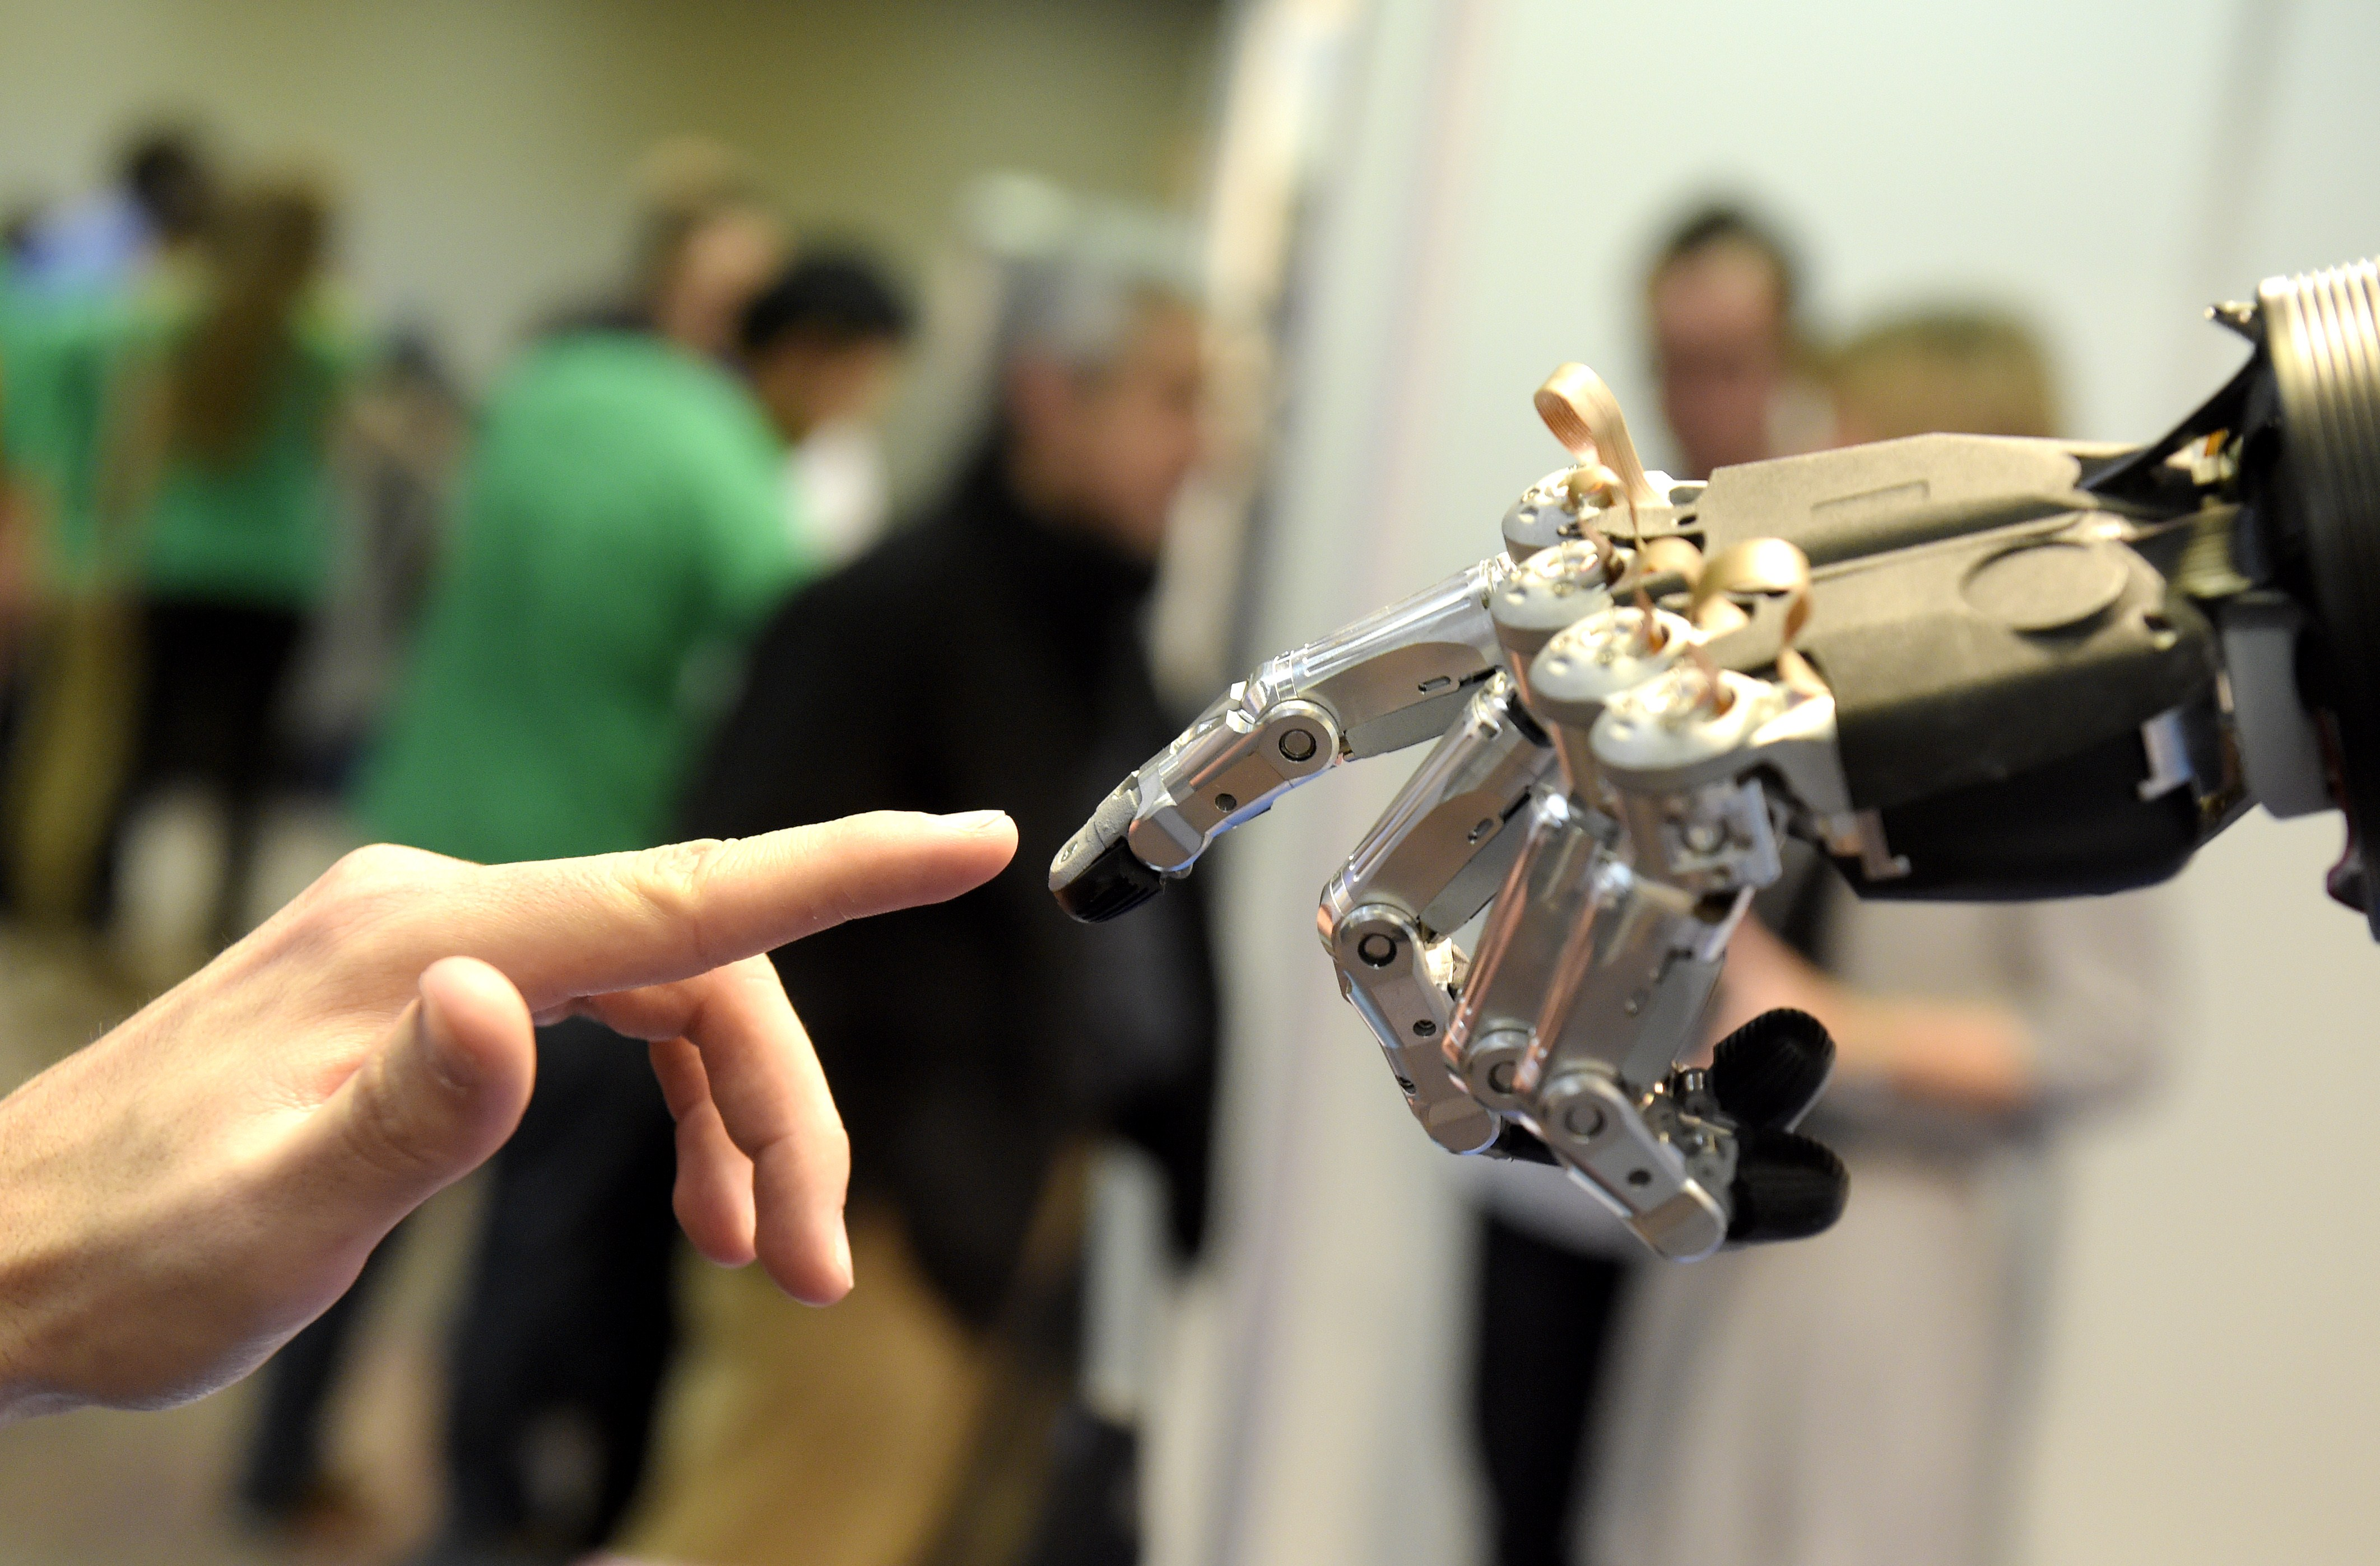 A man moves his finger toward SVH (Servo Electric 5 Finger Gripping Hand) automated hand made by Schunk during the 2014 IEEE-RAS International Conference on Humanoid Robots in Madrid on November 19, 2014.